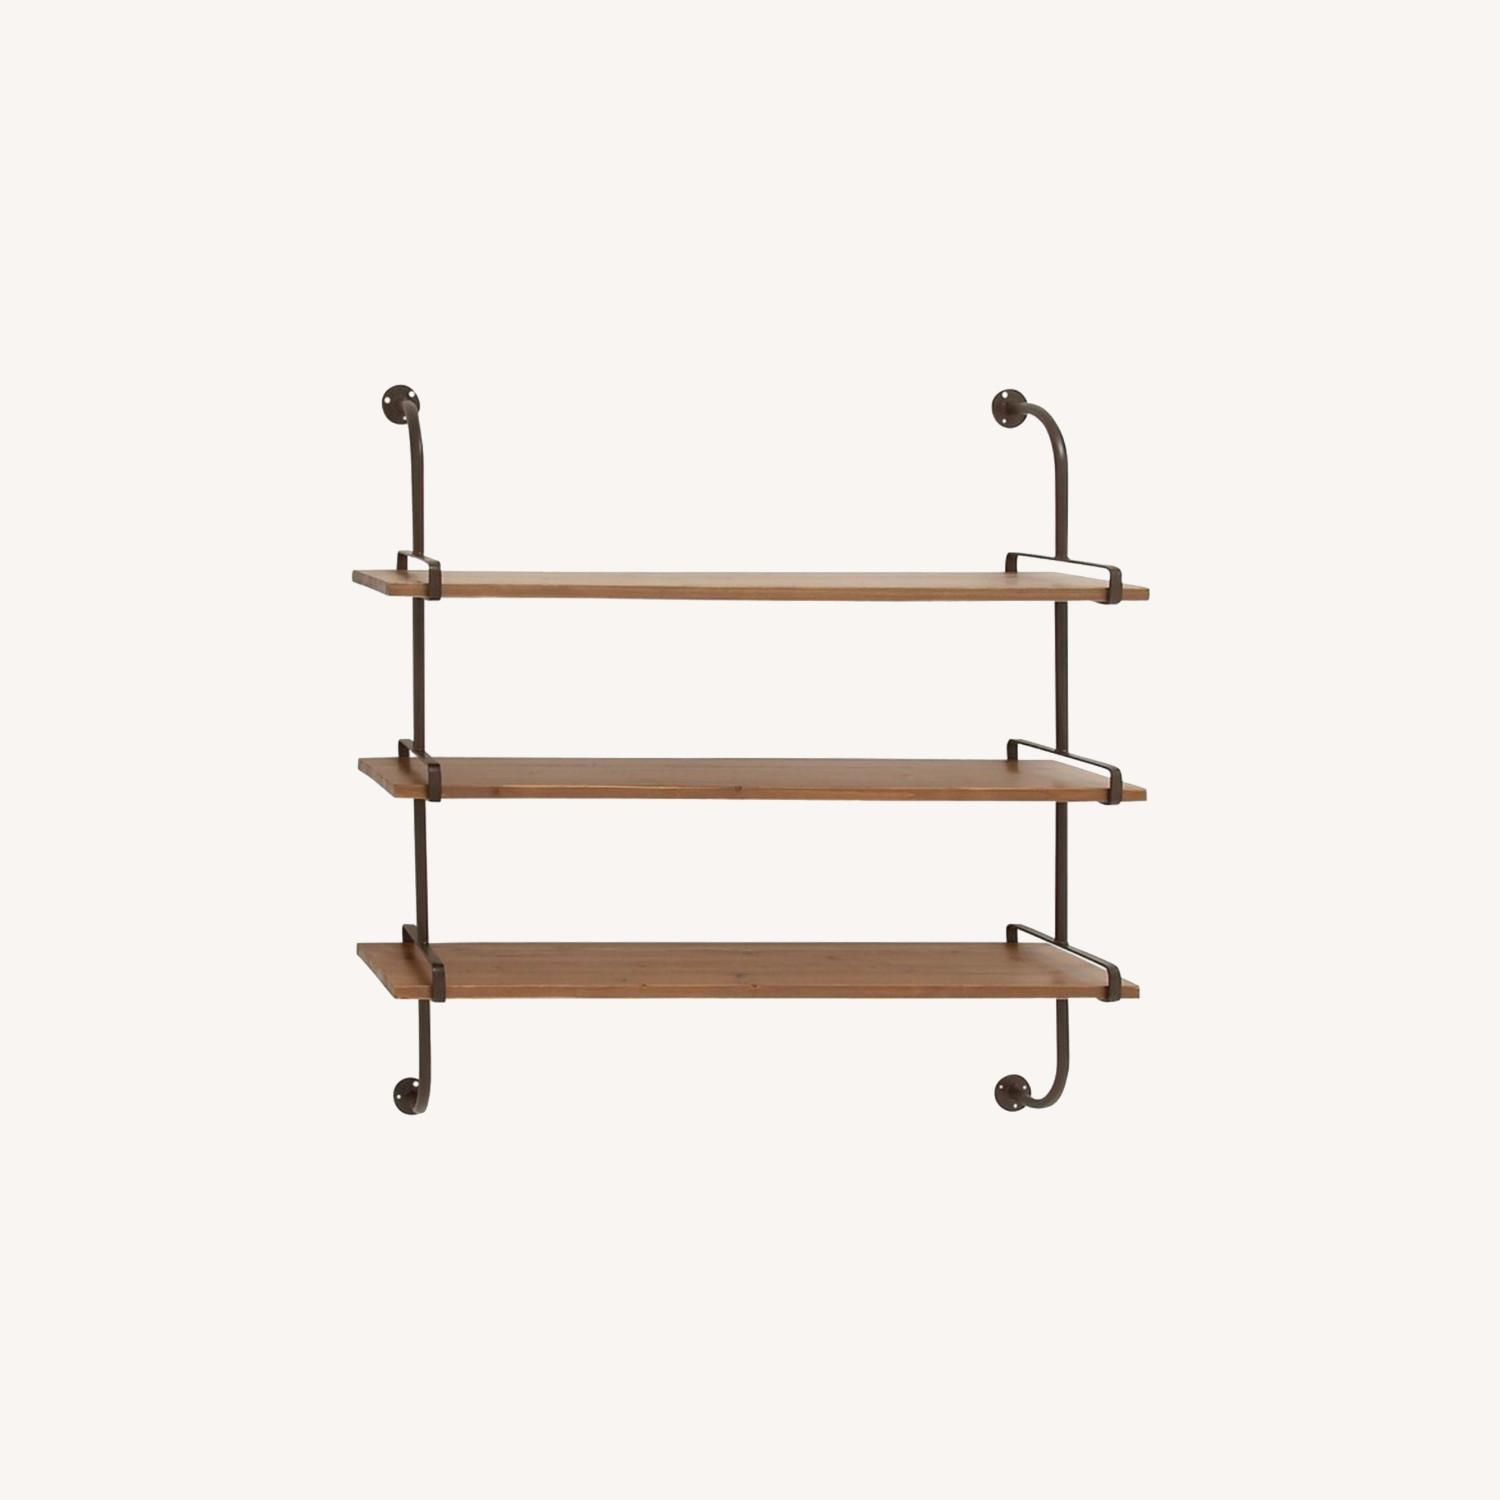 Wayfair Rustic Wood and Metal Wall Shelf - image-0